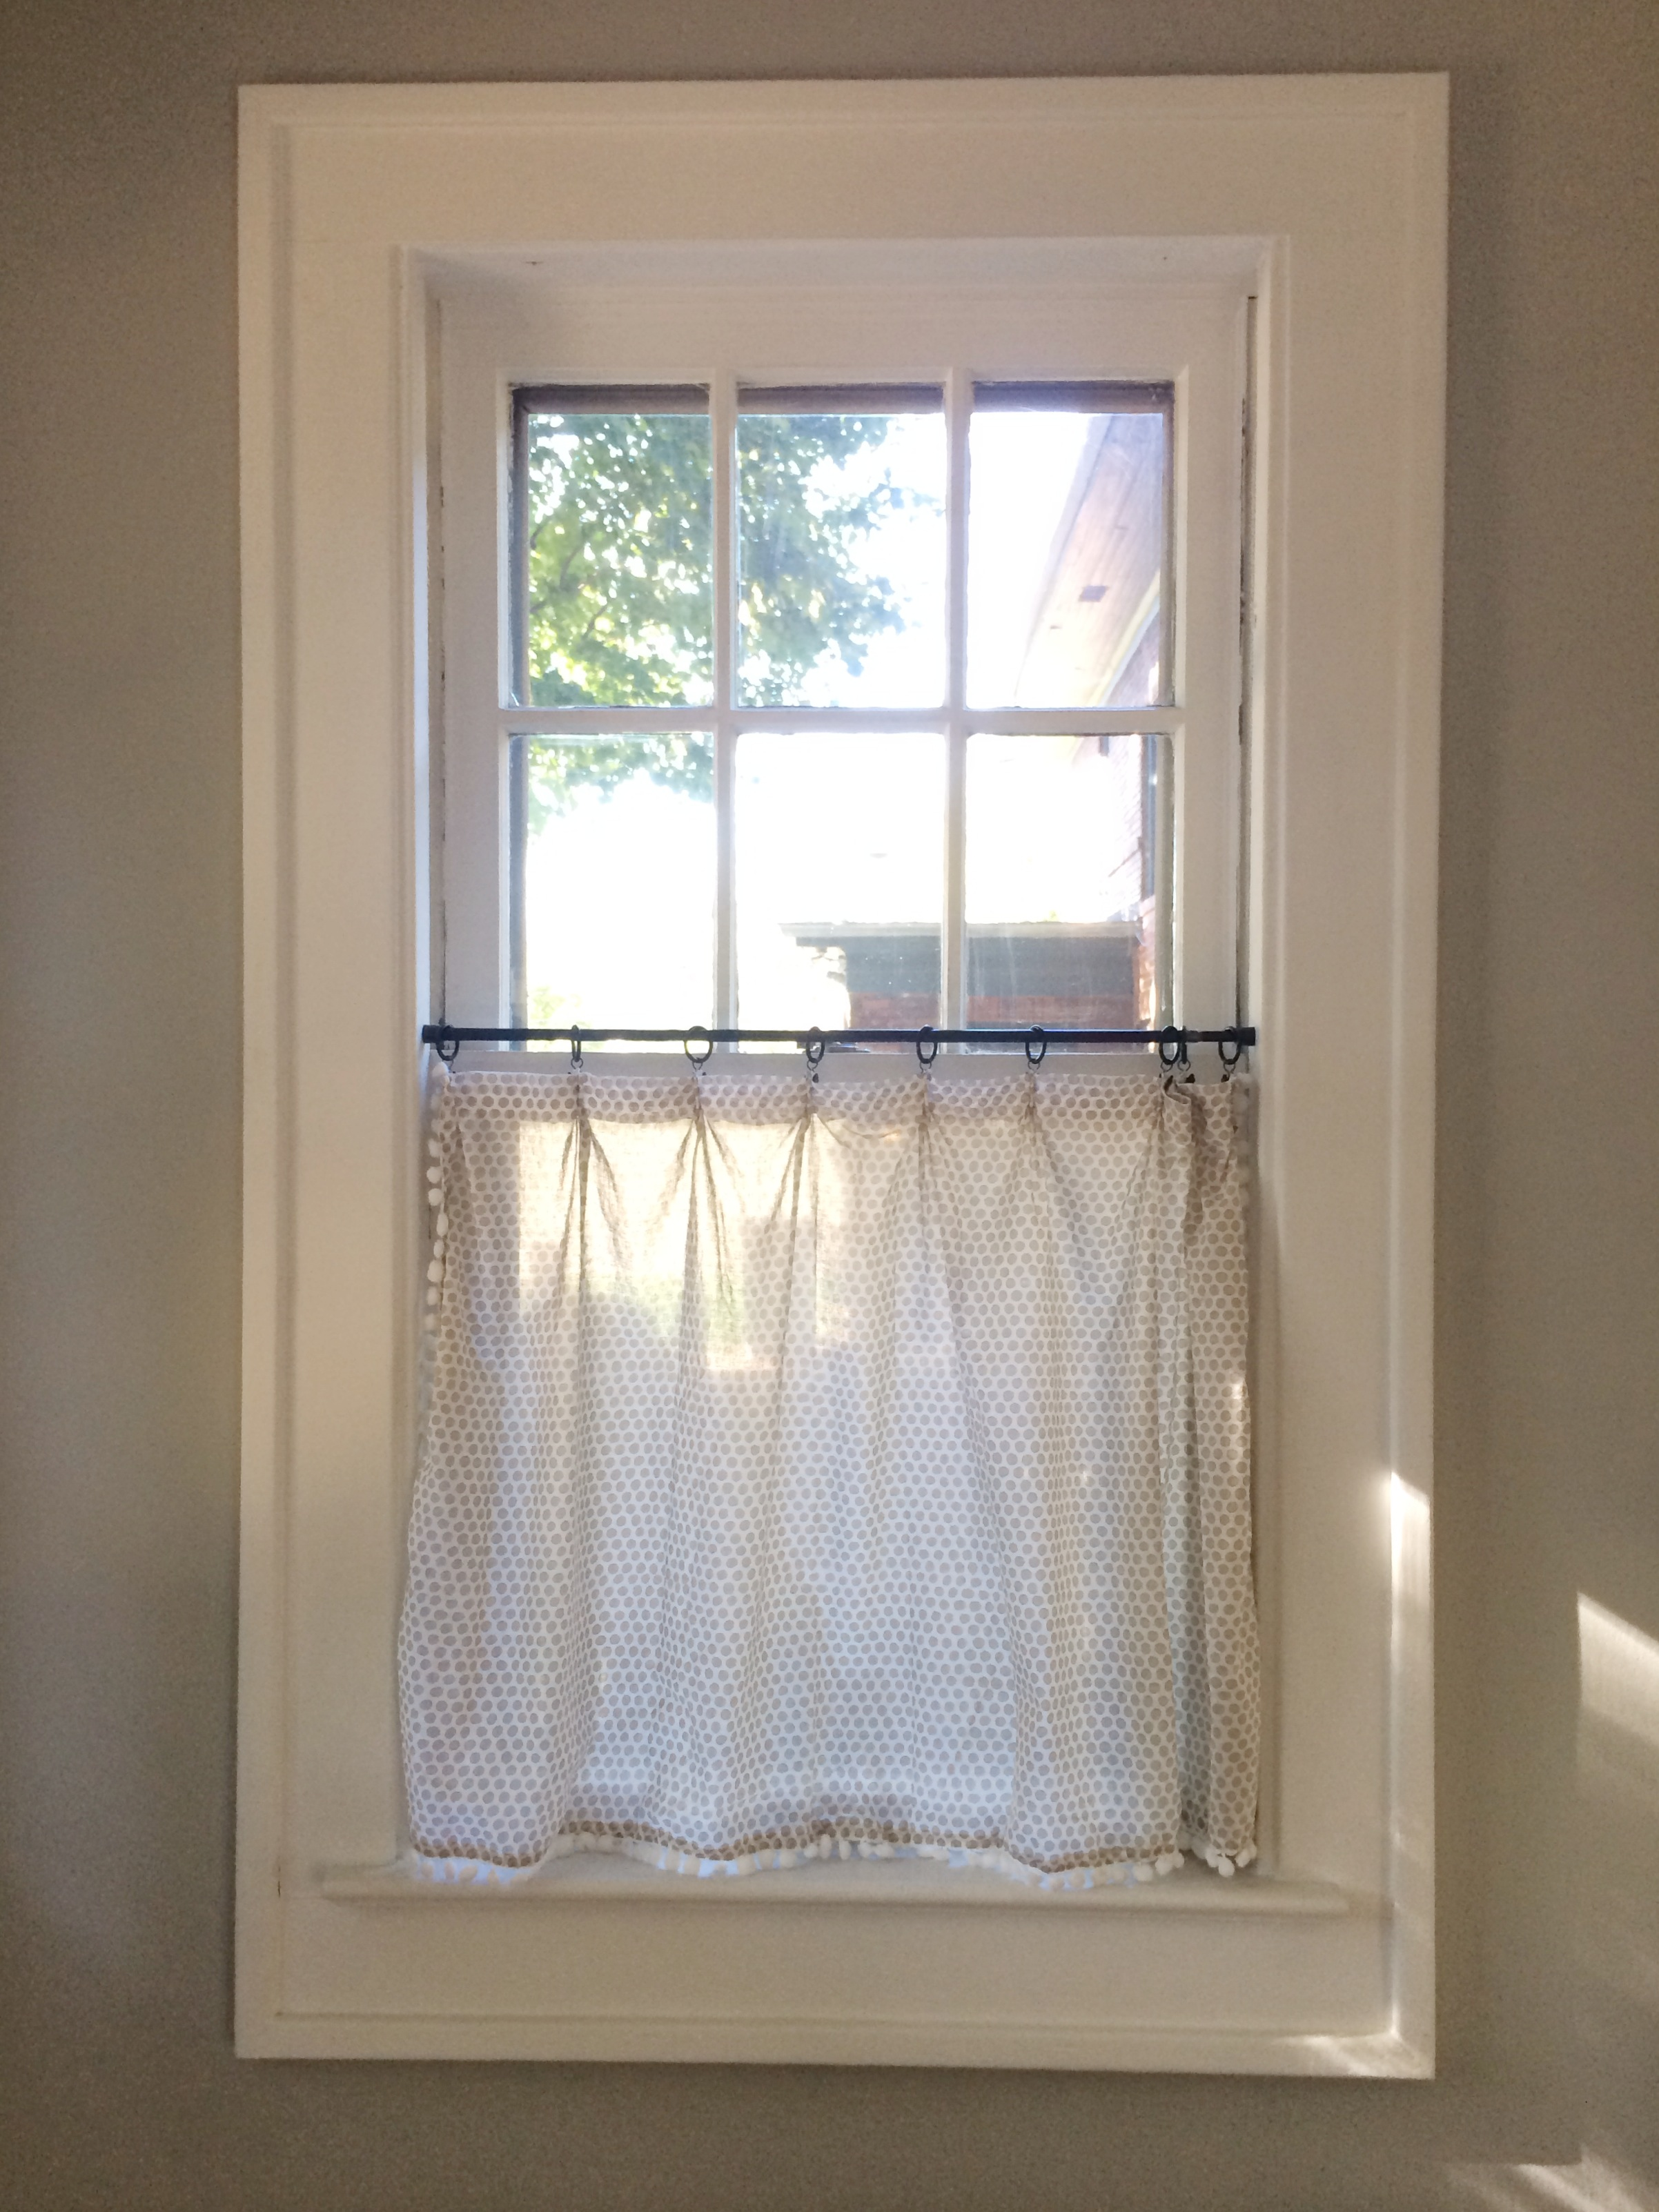 Cafe Curtain Clips Our Home The Kitchen Diy Cafe Curtains Lindsey Kubly